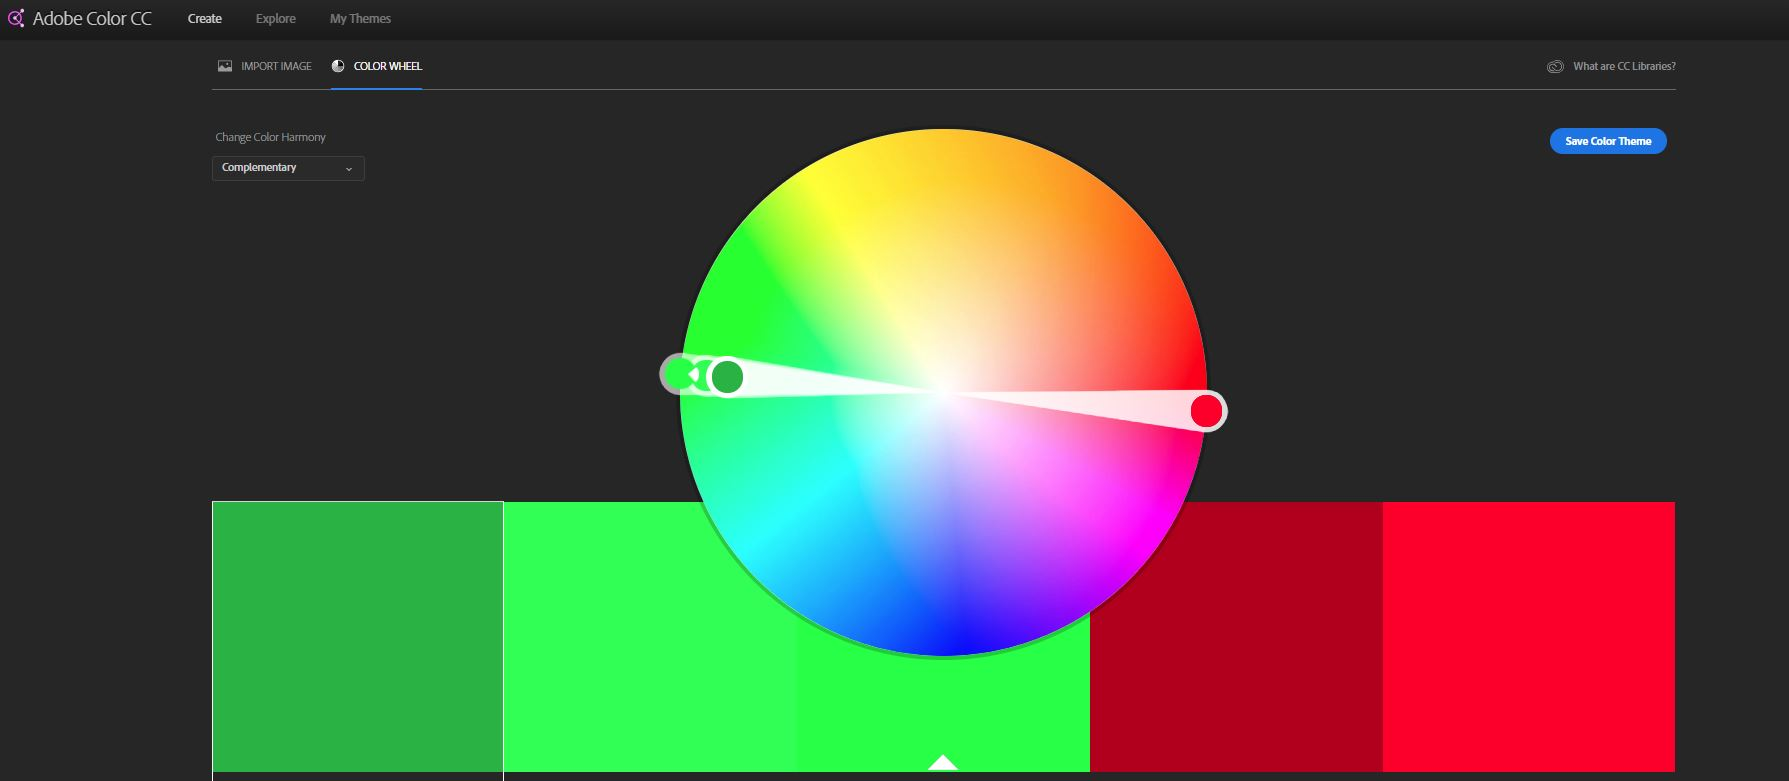 Free Image Editing Software Adobe Color Wheel